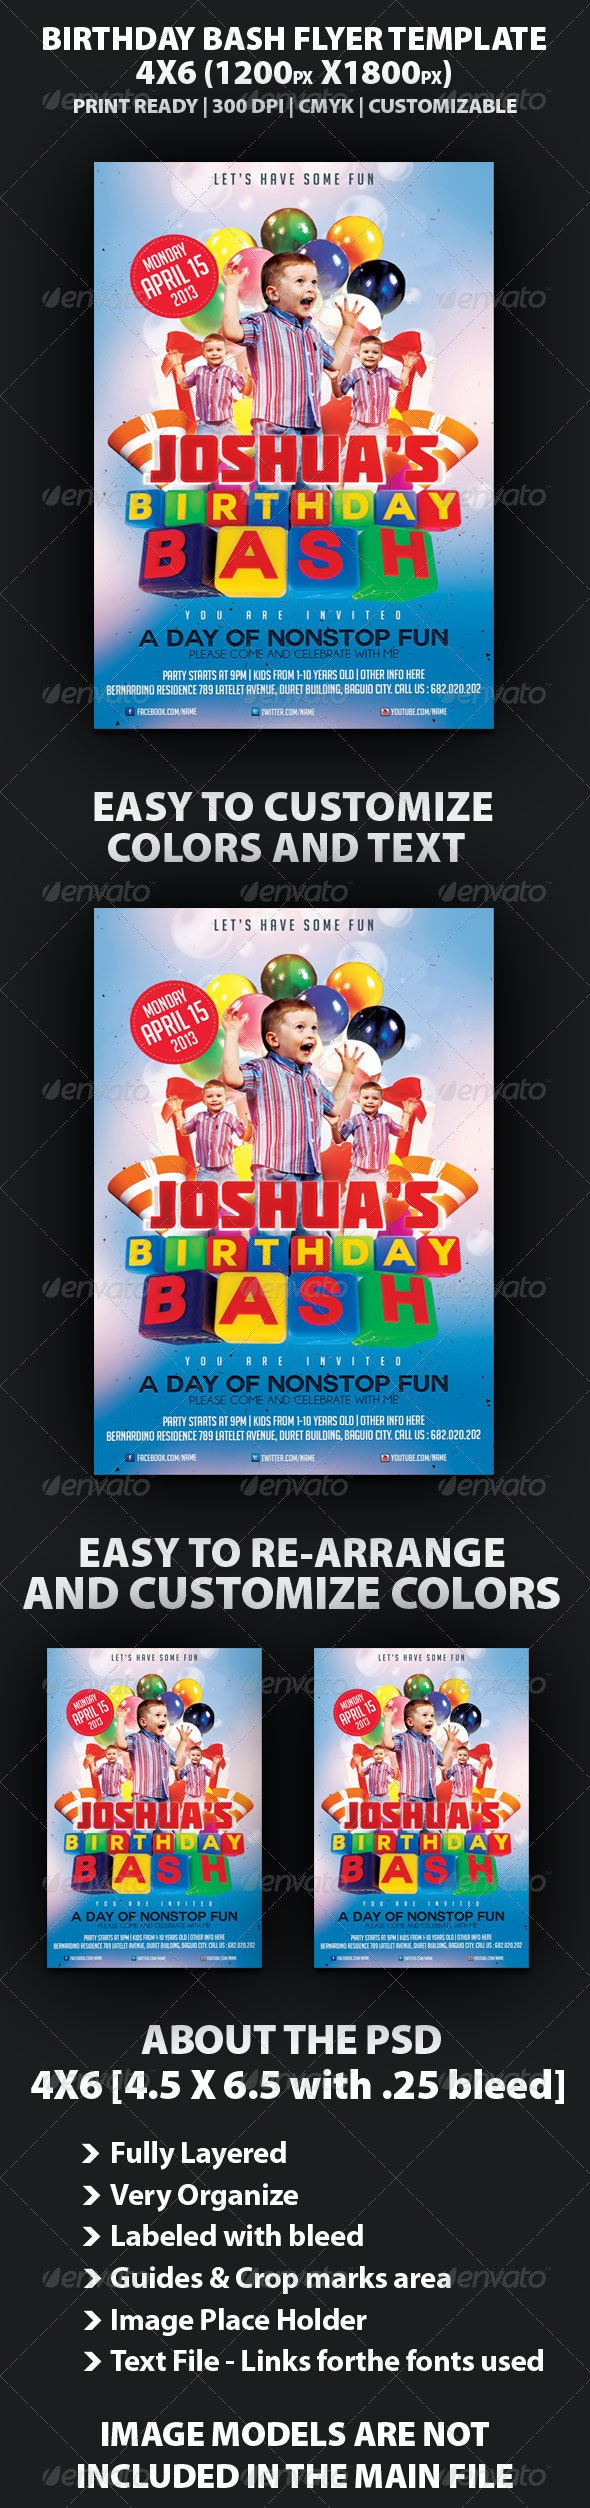 Birthday Bash Party Flyer Template - Clubs & Parties Events